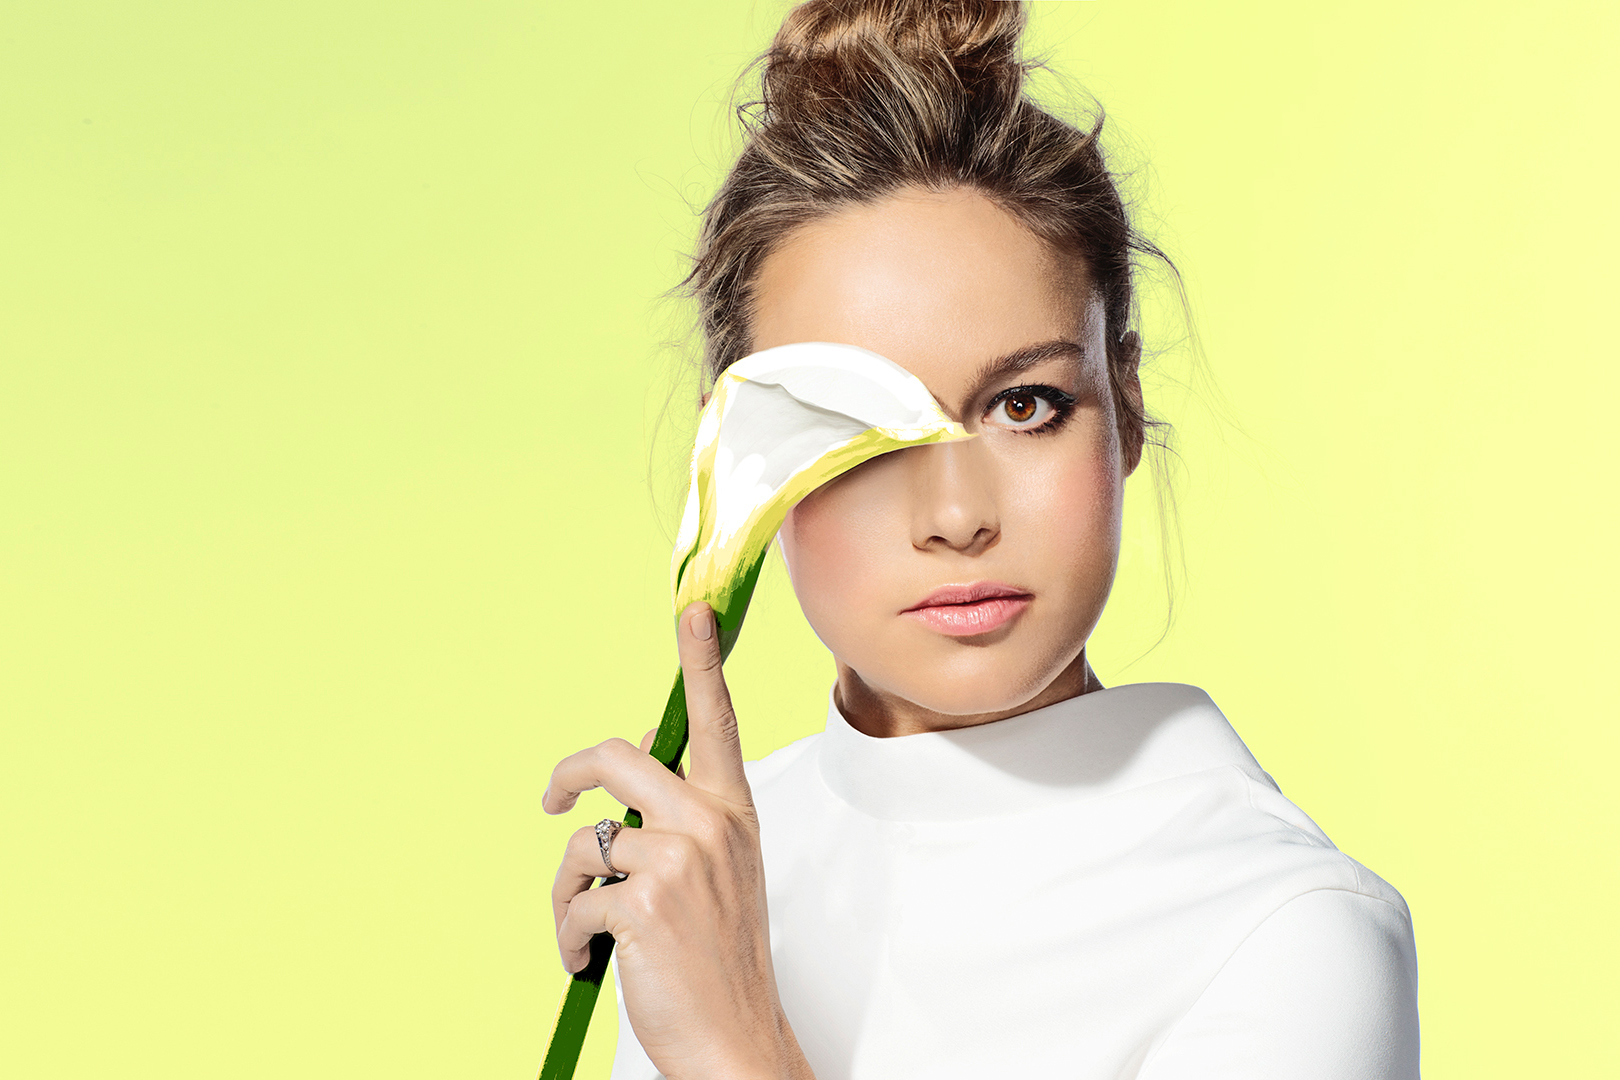 Brie Larson Gallery: Brie Larson Photo Gallery - Page #2